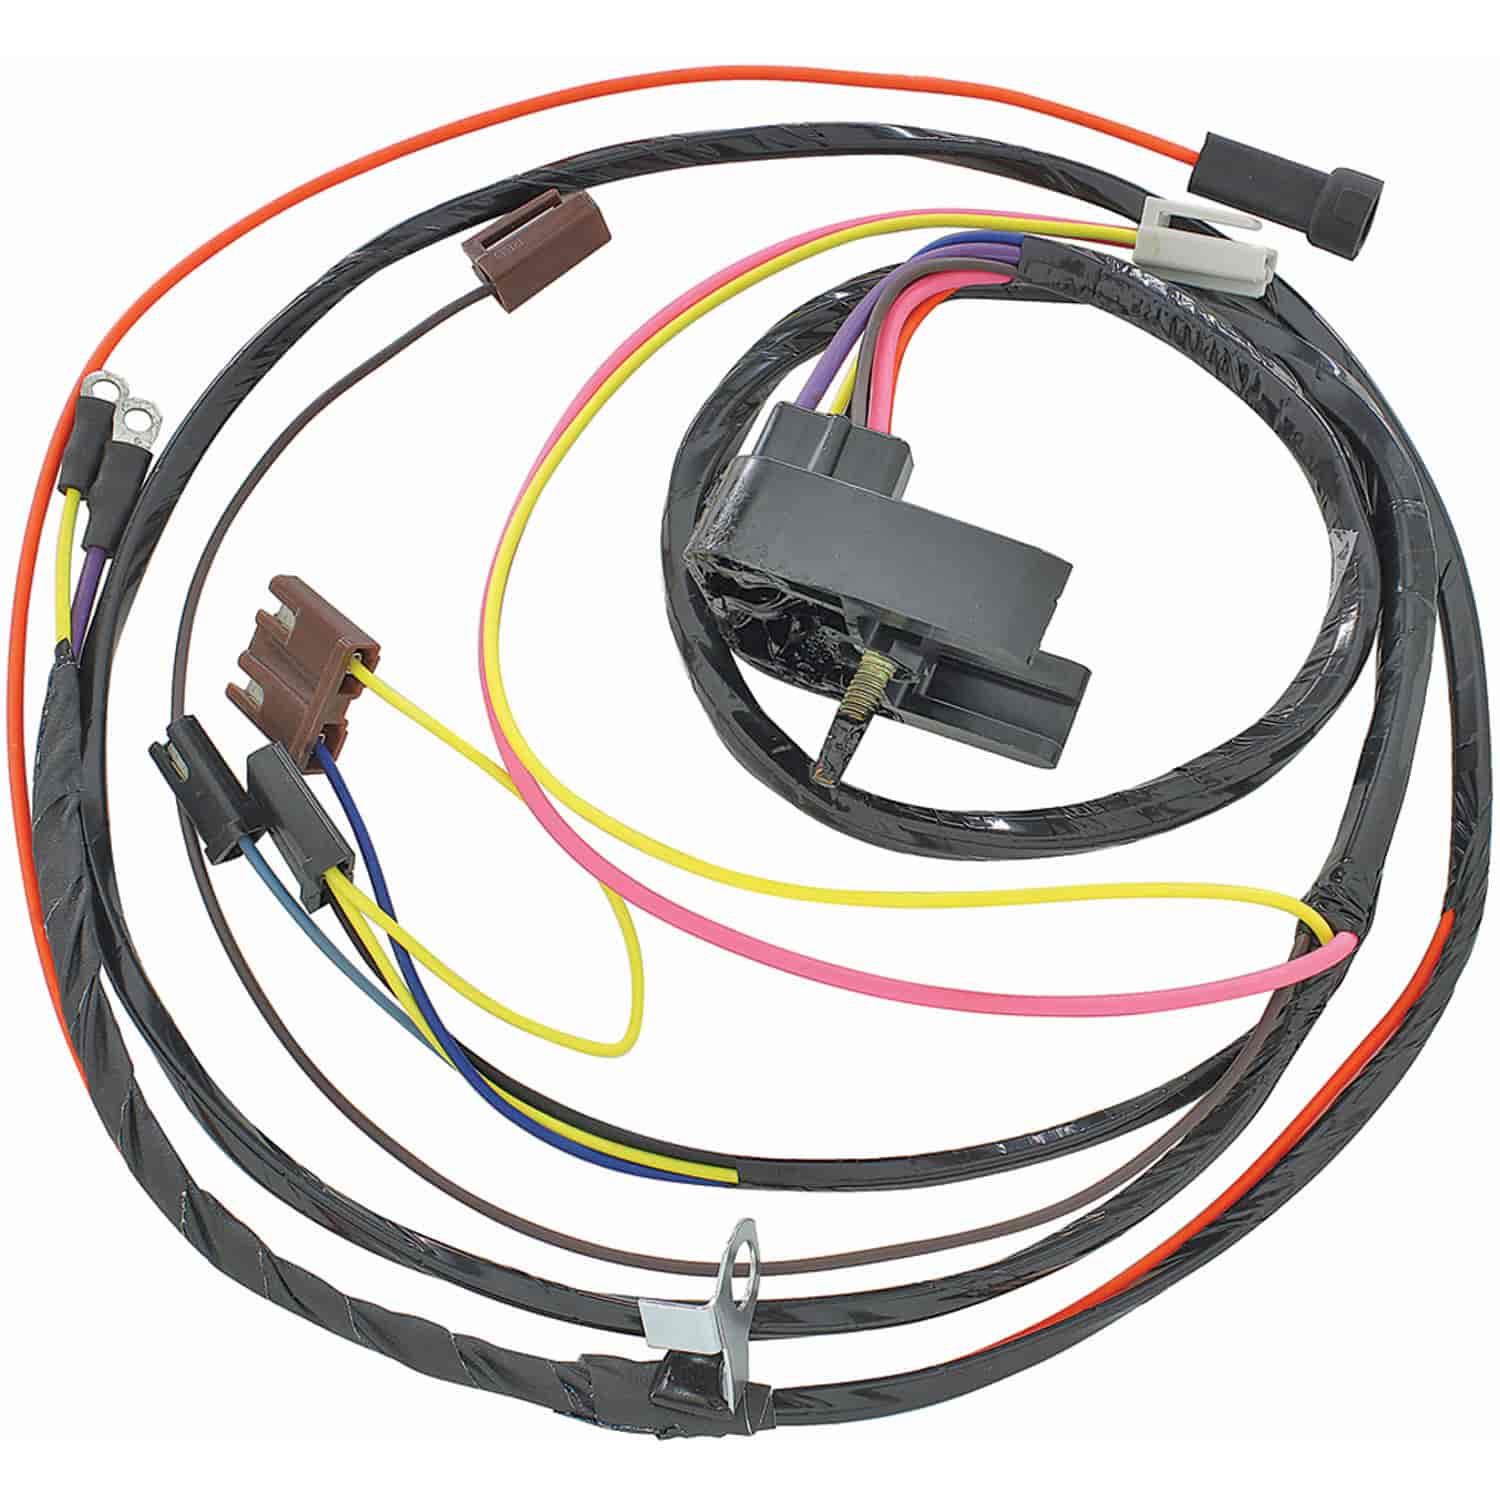 Wiring Harness For 1968 Chevelle Circuit And Diagram Hub Dash Restoparts 38978 Engine El Ss 396 Interior Custom